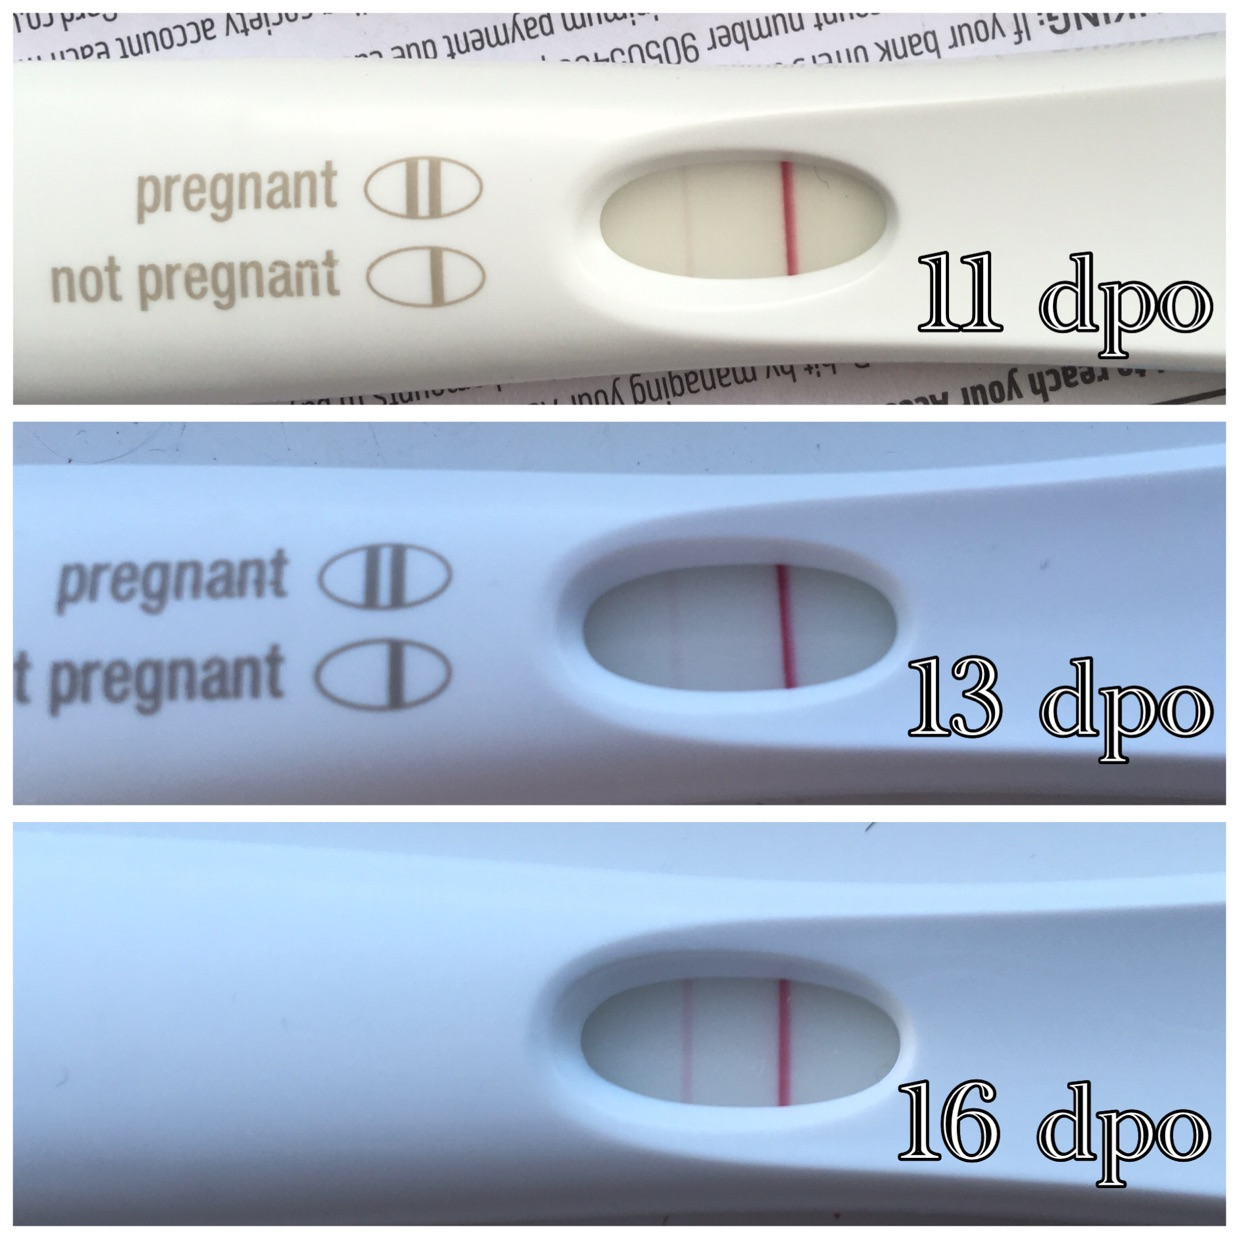 First Response Progression Top 2 Are Frer Bottom One Is First